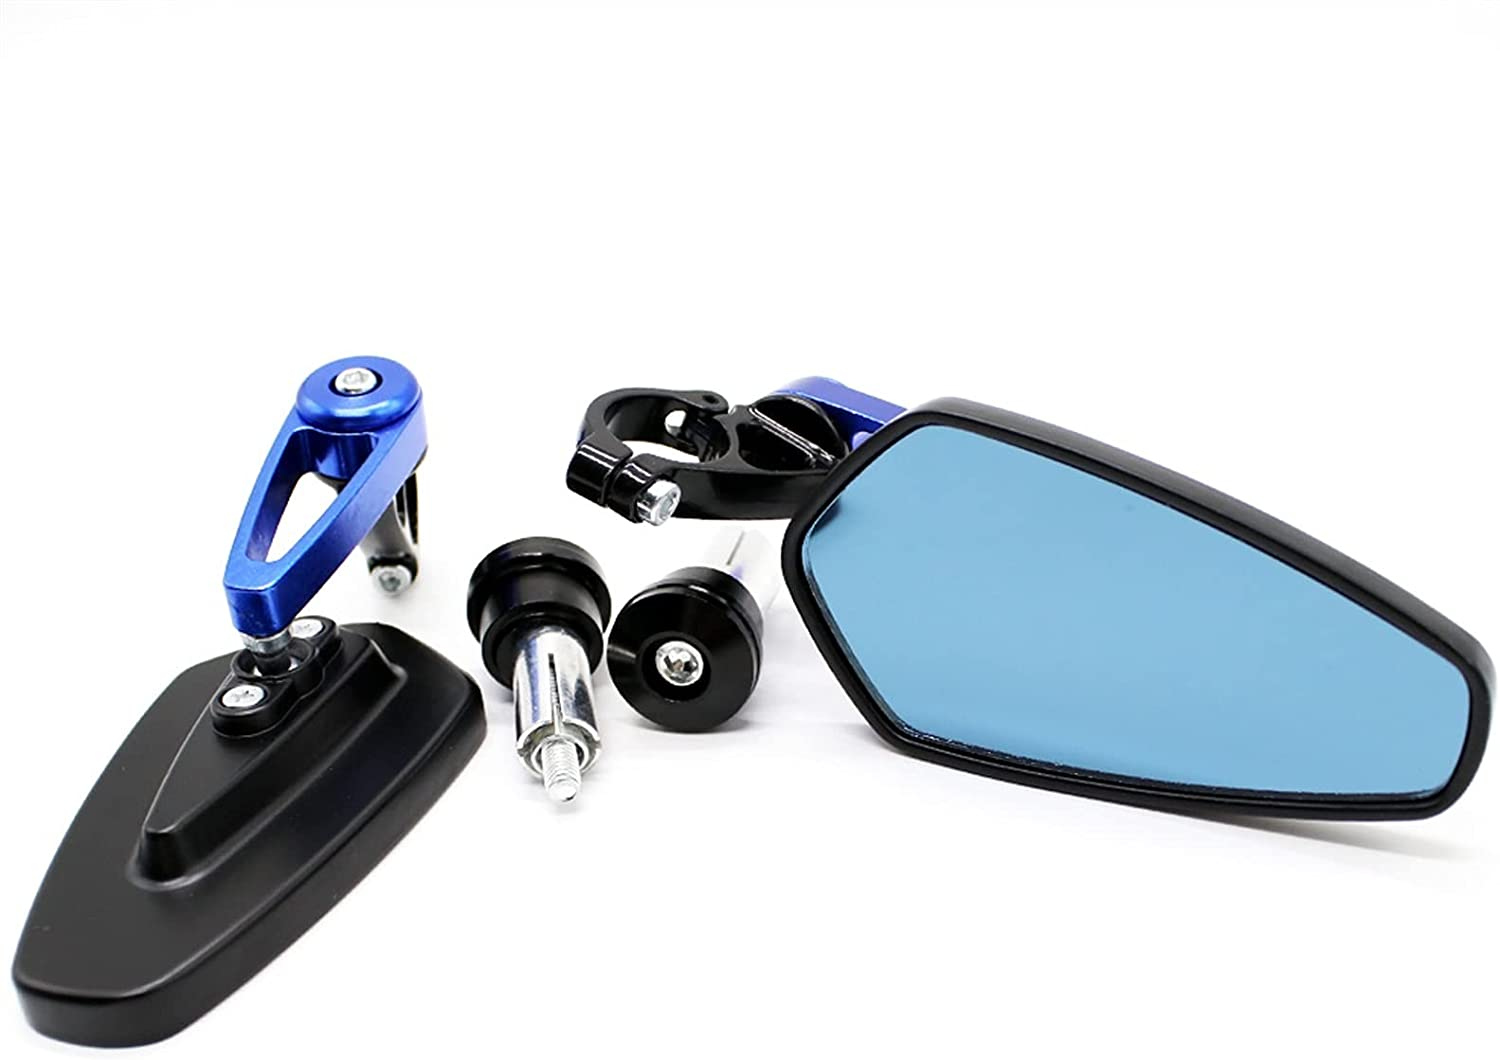 Sale SALE% OFF WXSM low-pricing for Handlebar Grips Rearview Y-amaha Mirror Motorcycle